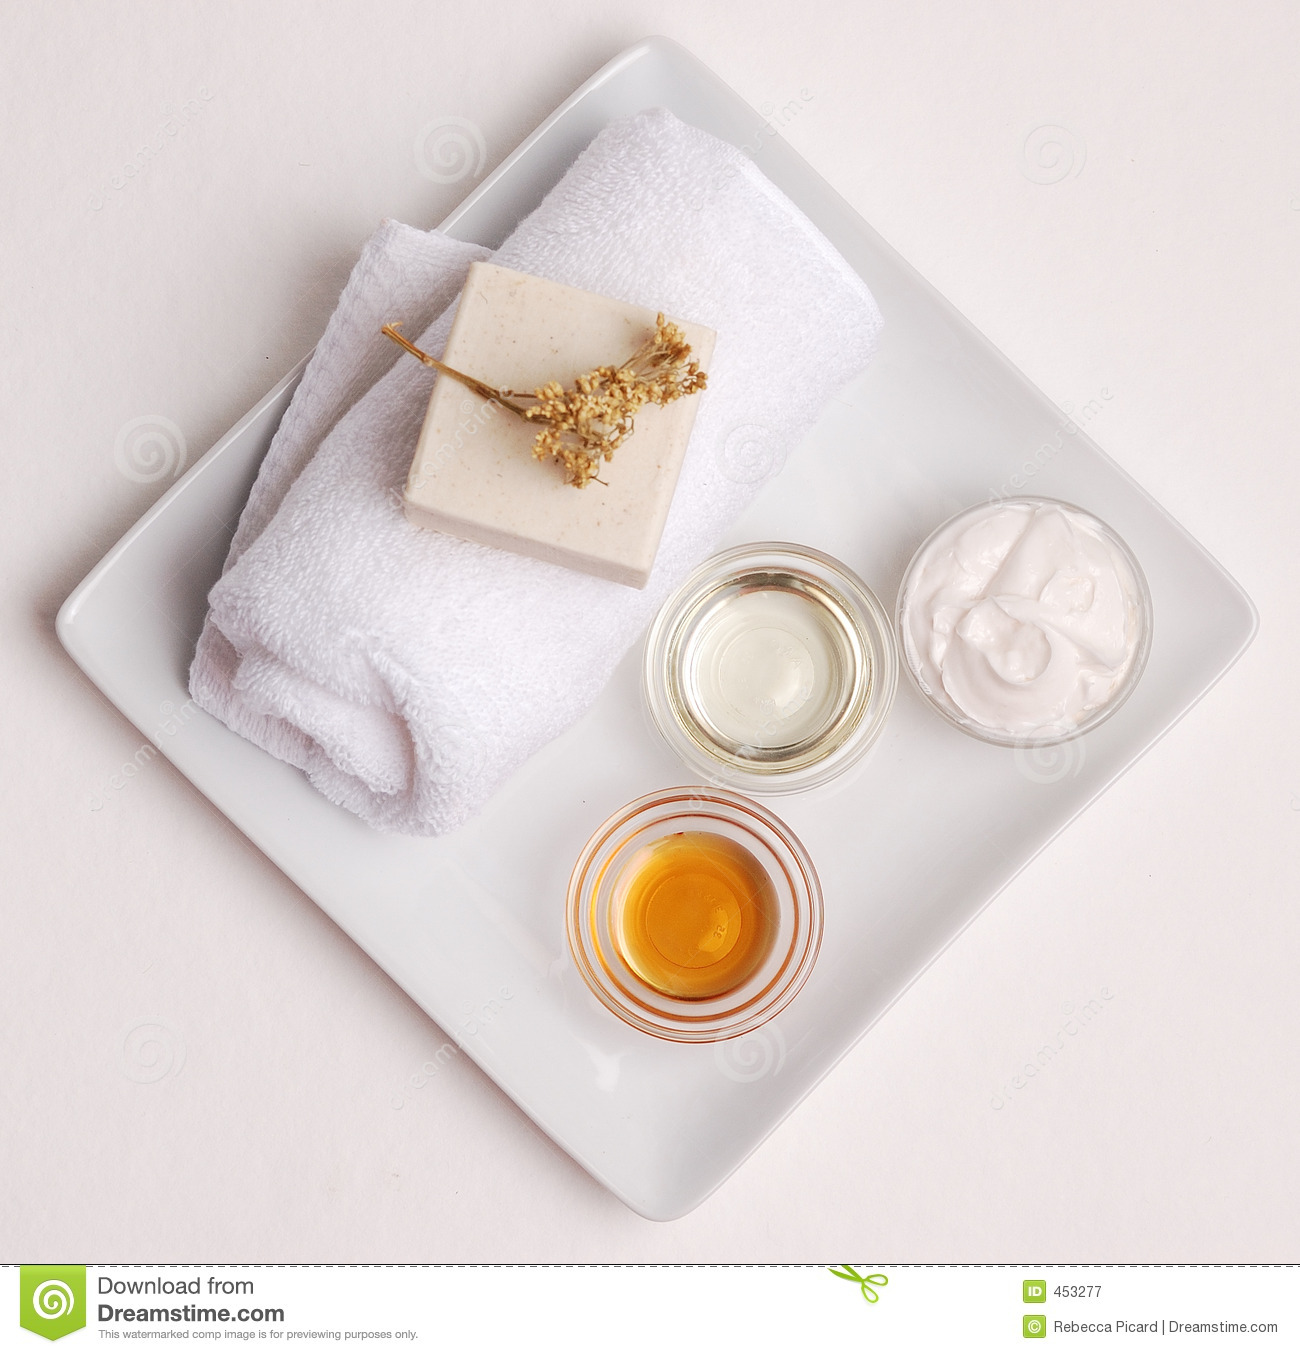 Download Clean and Natural Spa stock image. Image of luxurious, bathe - 453277